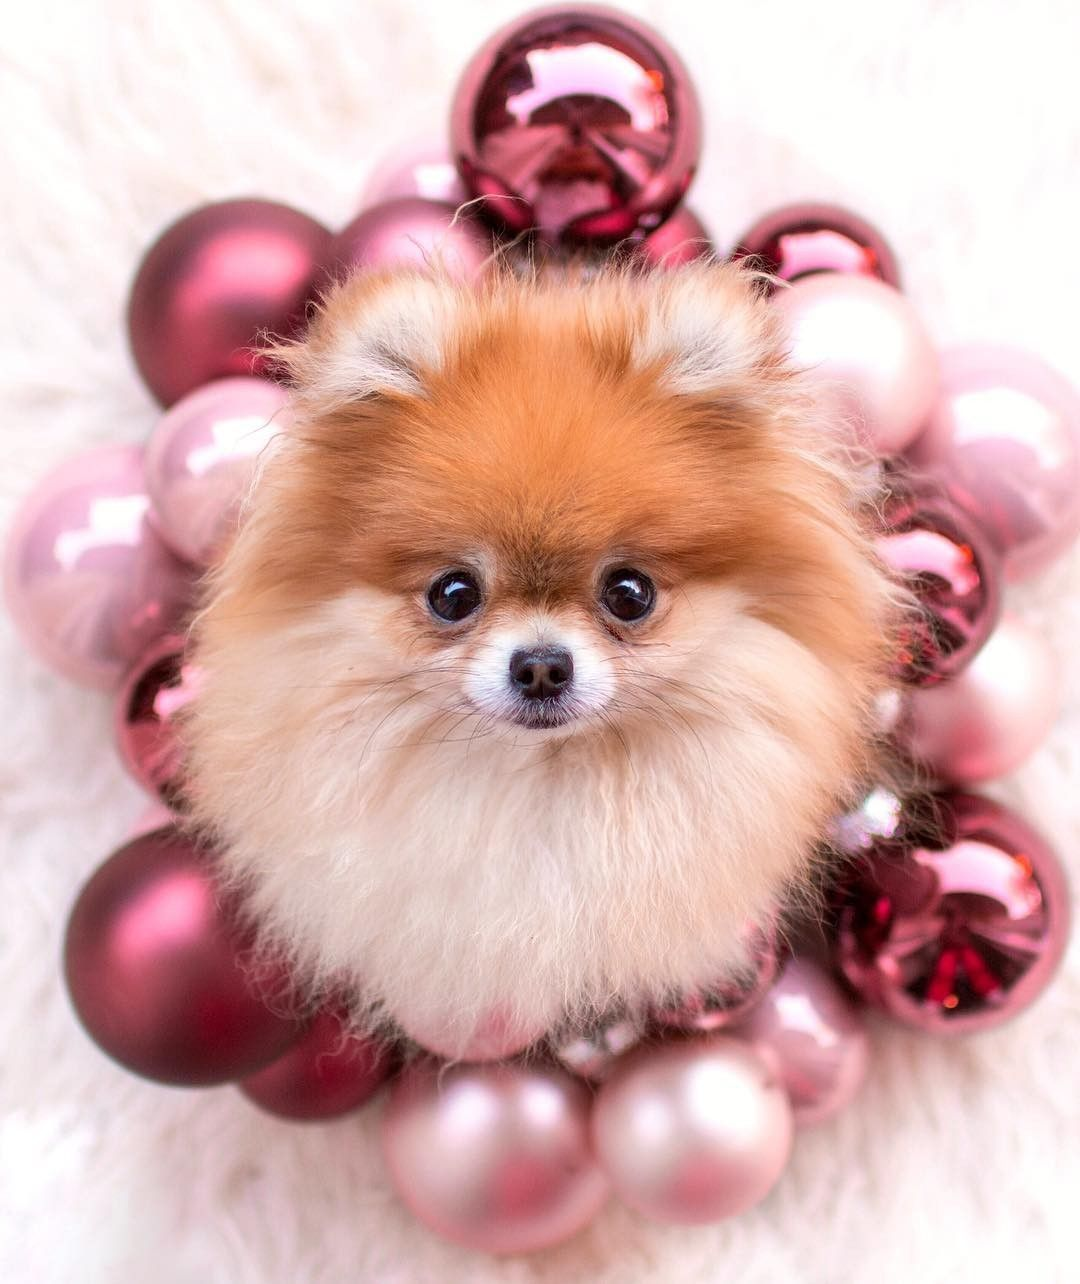 Cute Pomeranian 1080x1284 Wallpaper Teahub Io